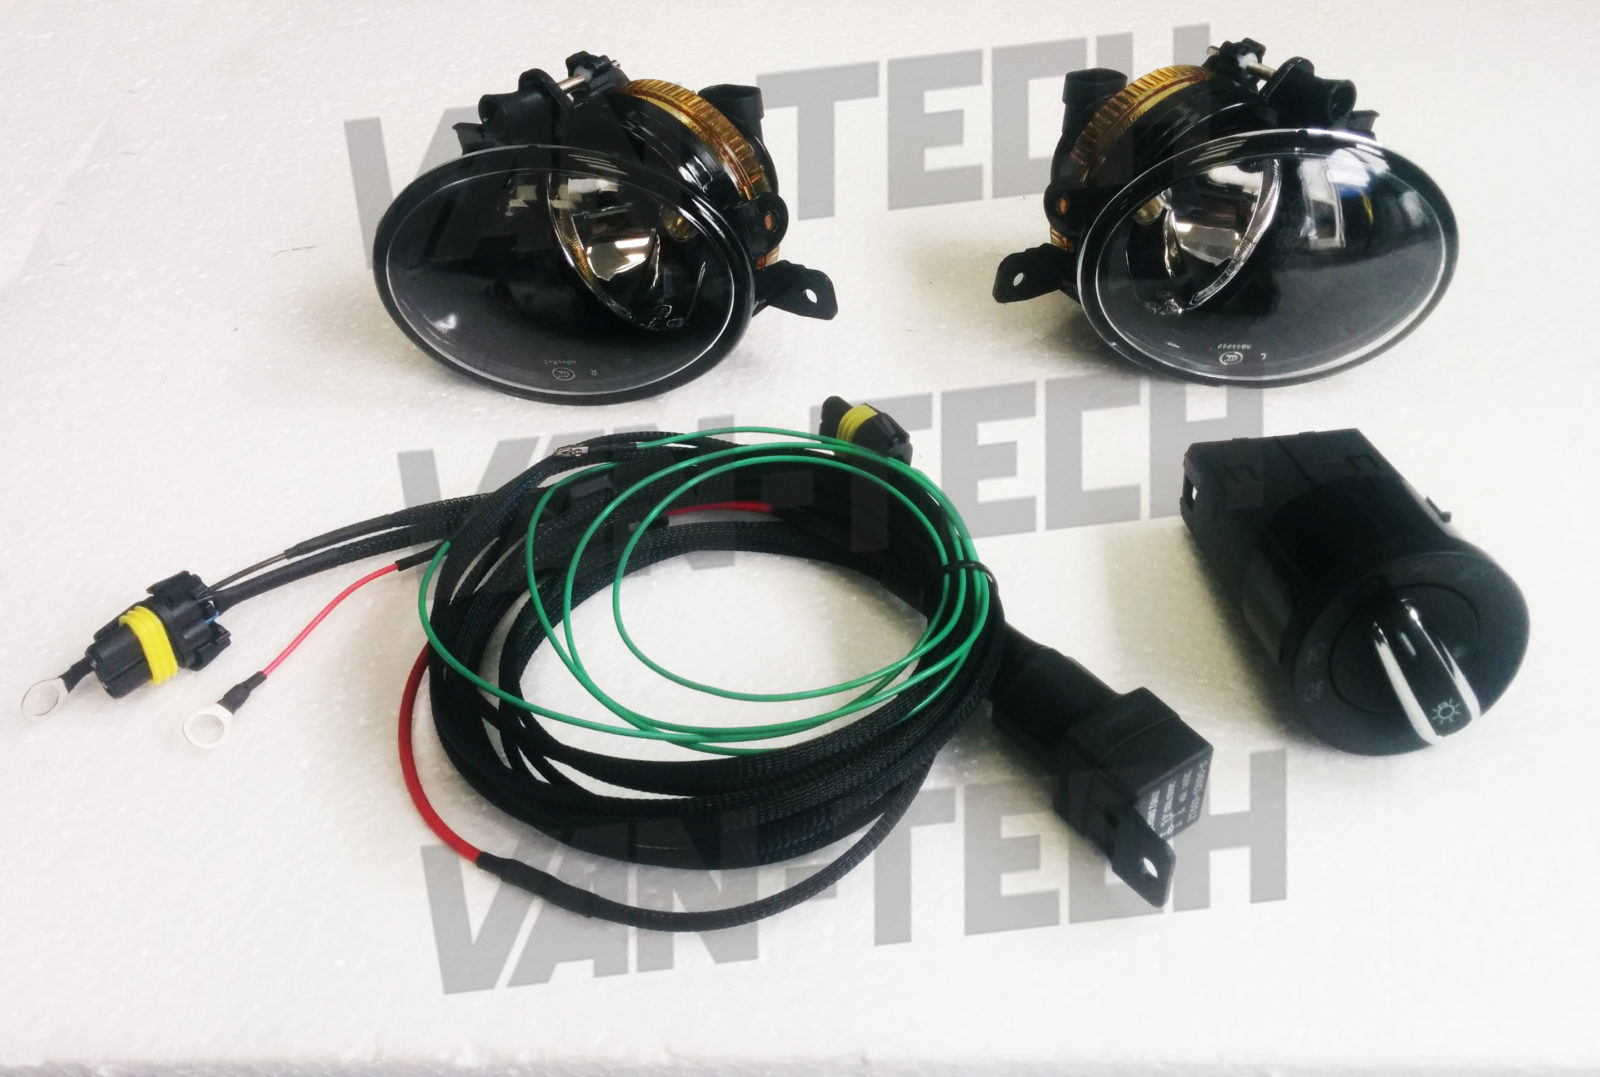 hight resolution of vw t5 fog lights and wiring kit fits models 2010 onwards